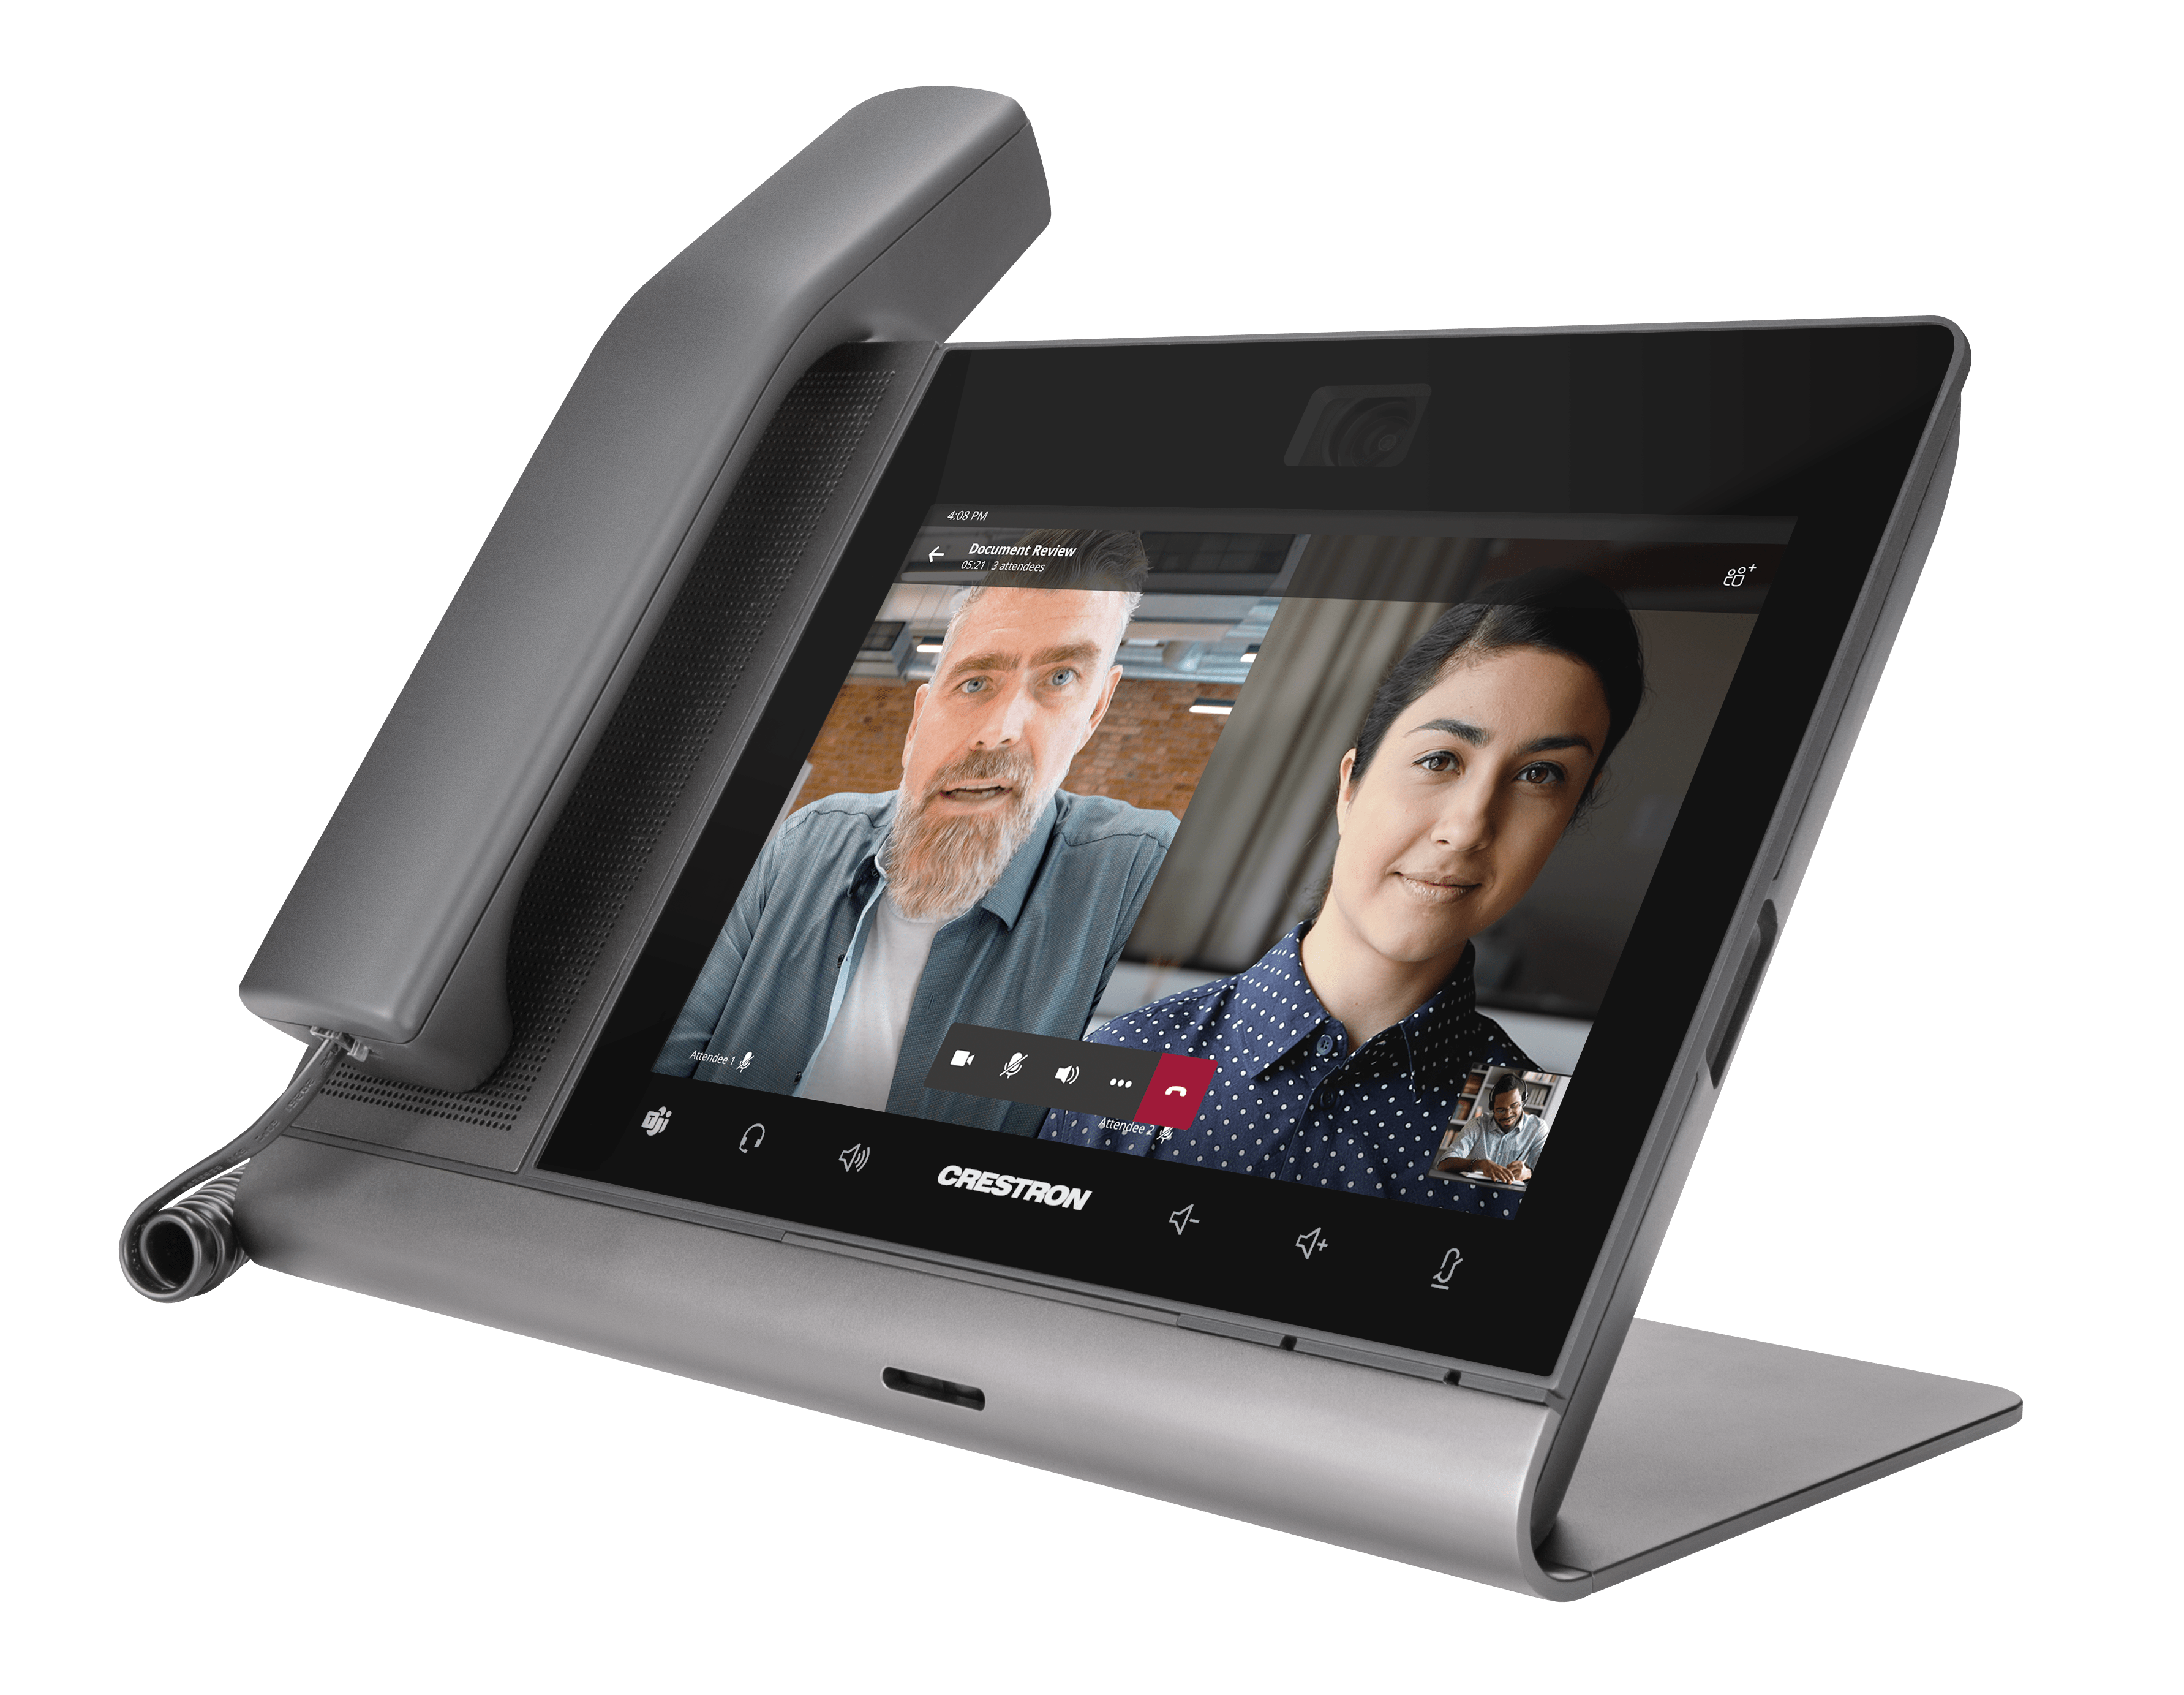 Flex 8 inch video desk phone with handset for Teams